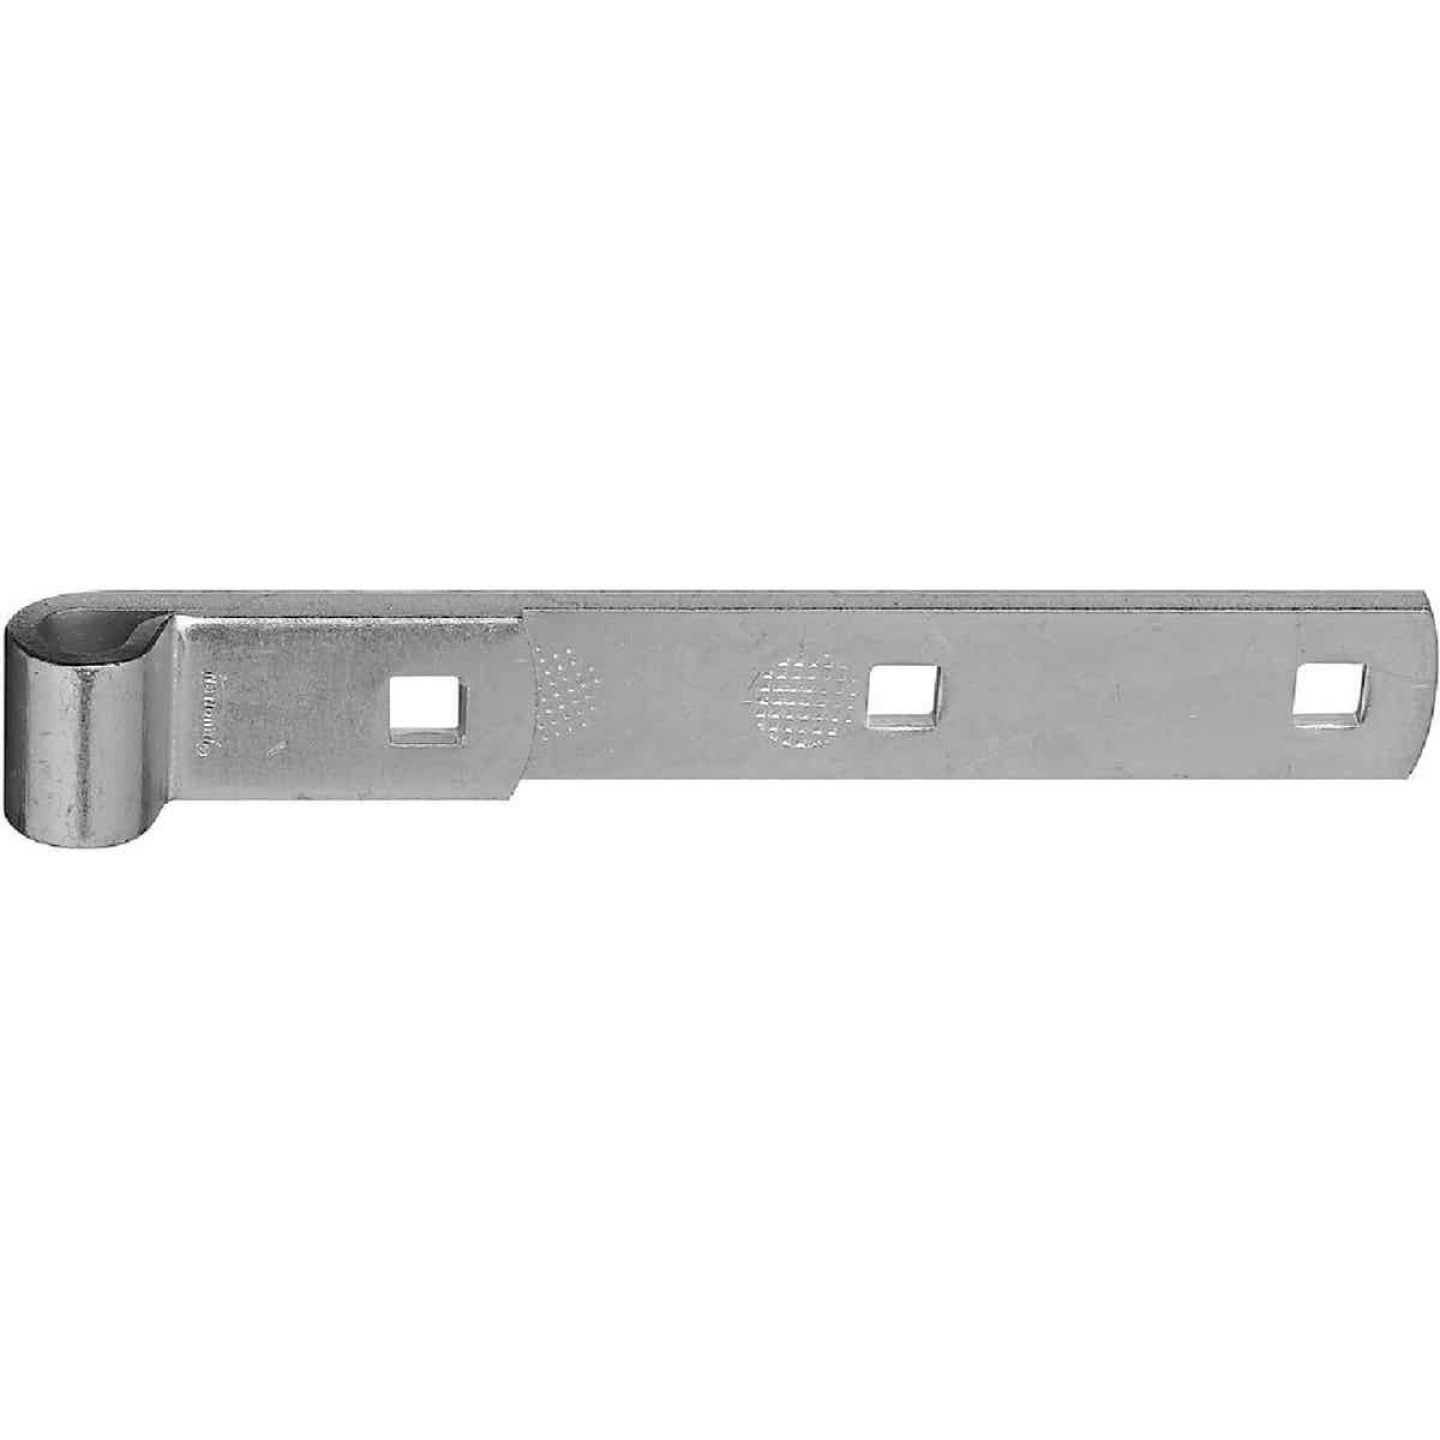 National 8 In. Zinc Hinge Strap Image 1